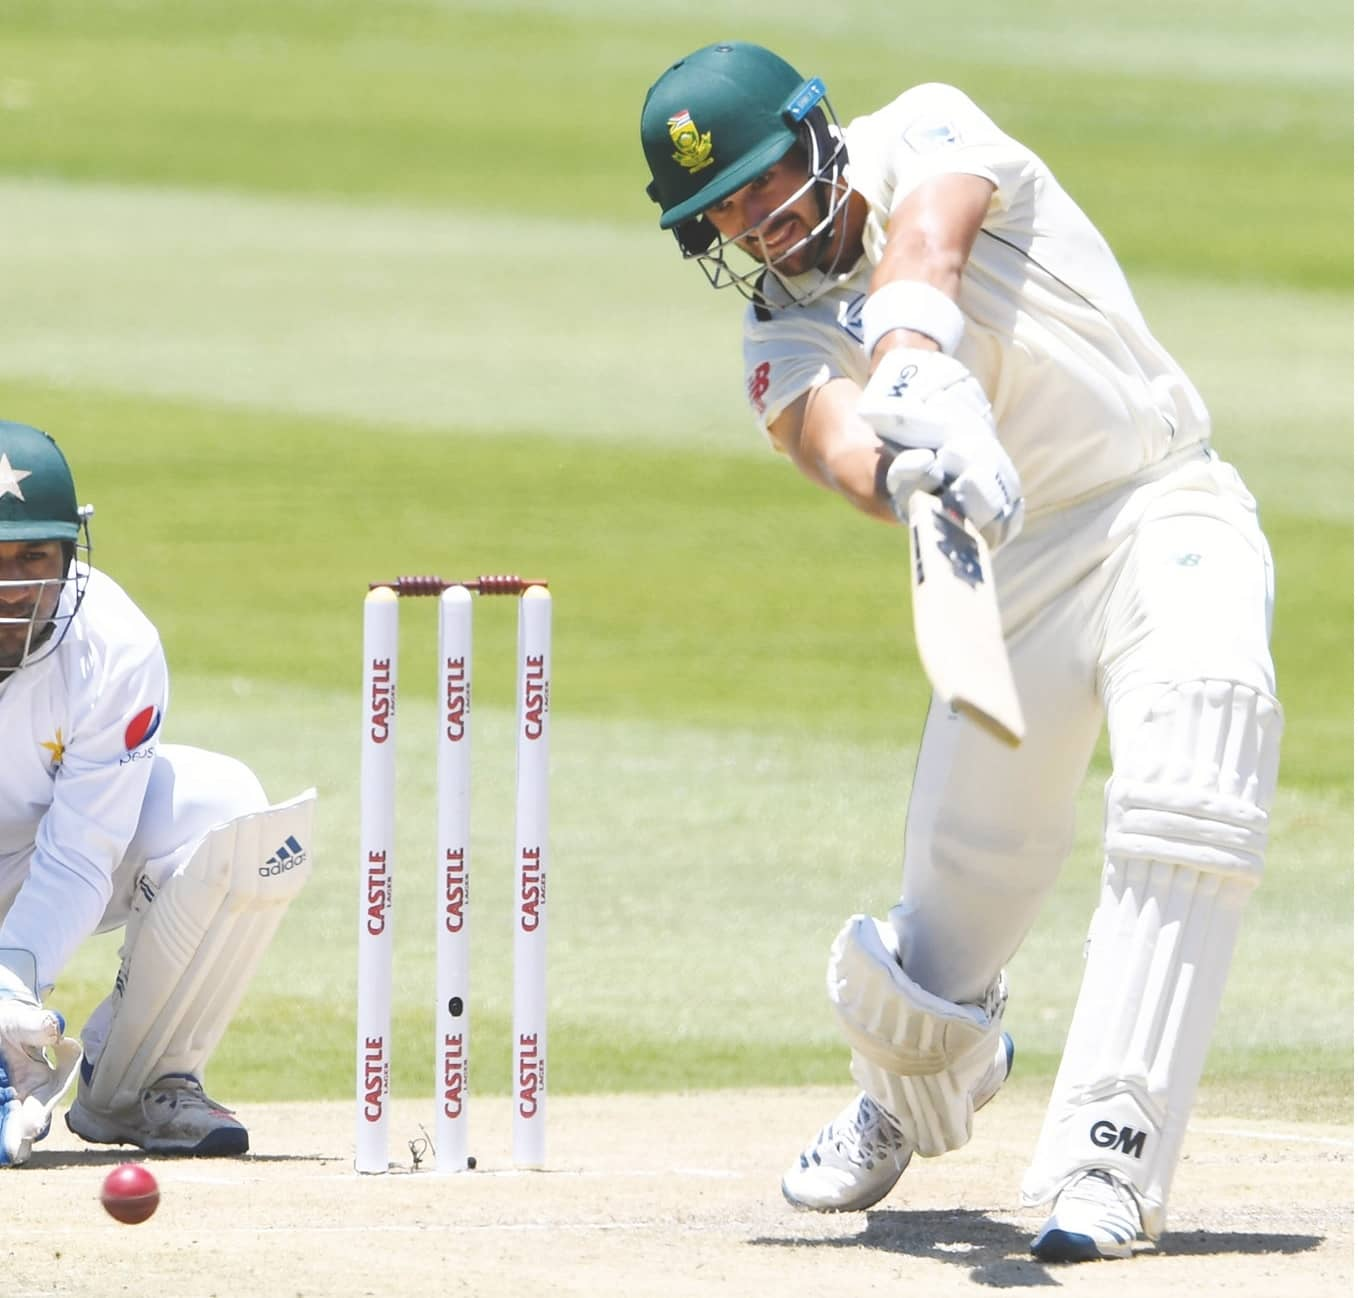 Chance To Make Our Mark, Vows Proteas' Aiden